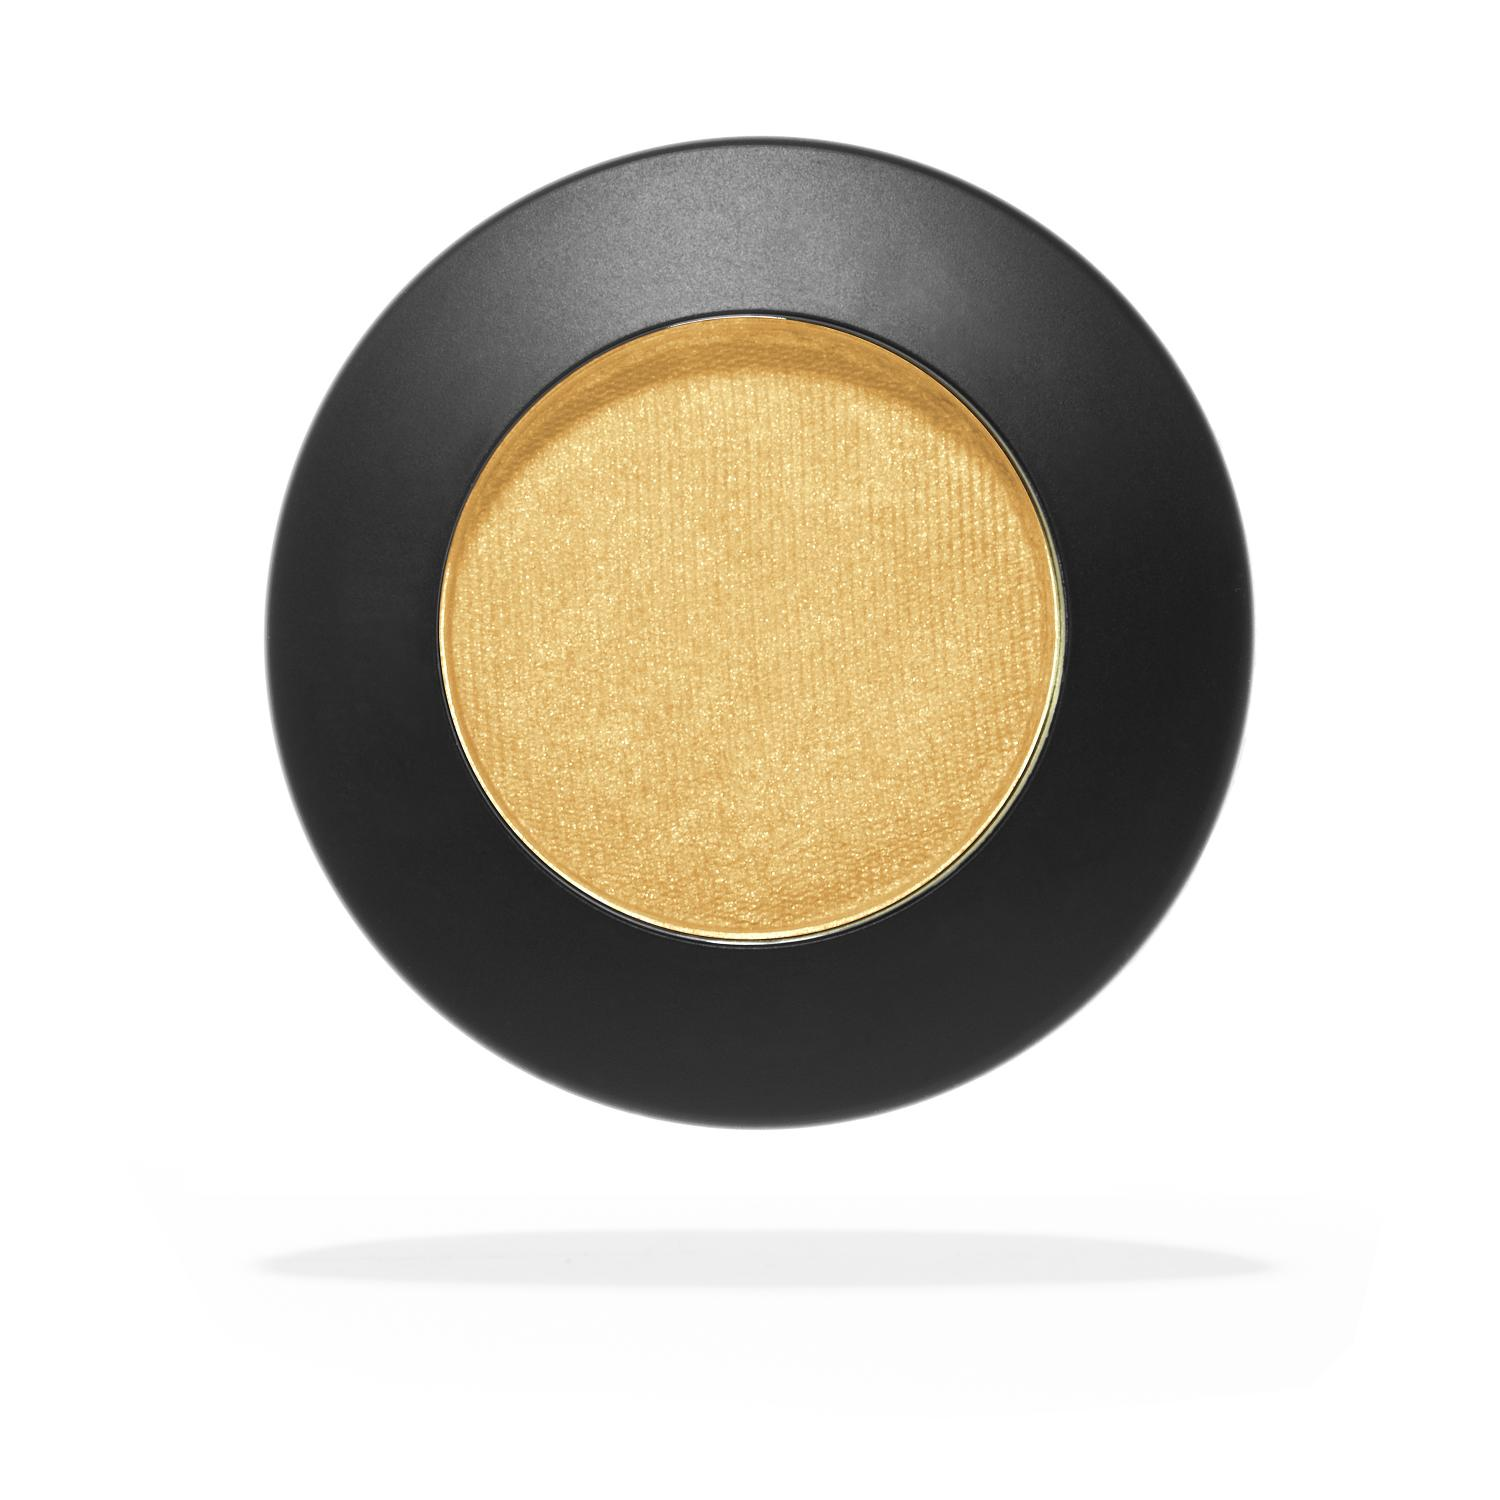 SUNF - MICRONIZED EYE SHADOW